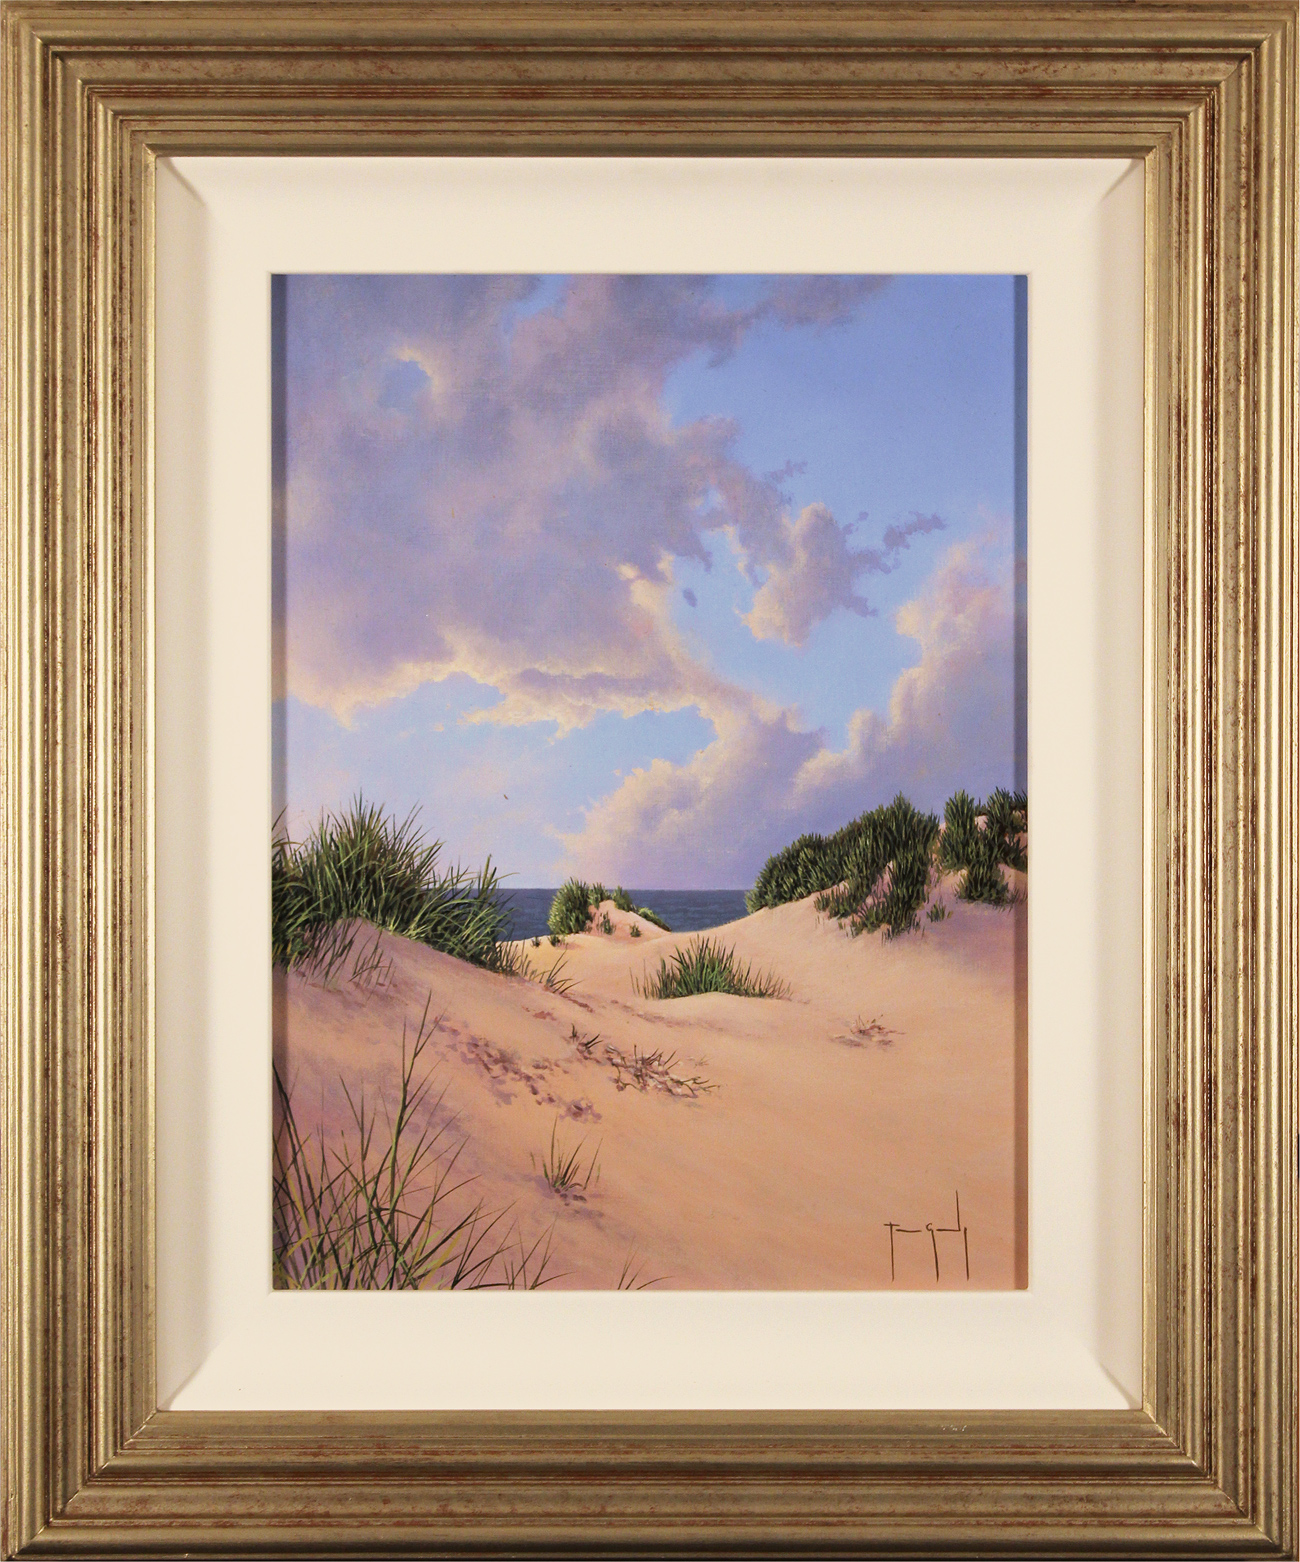 Terry Grundy, Original oil painting on panel, Sand, Sea and Sky. Click to enlarge